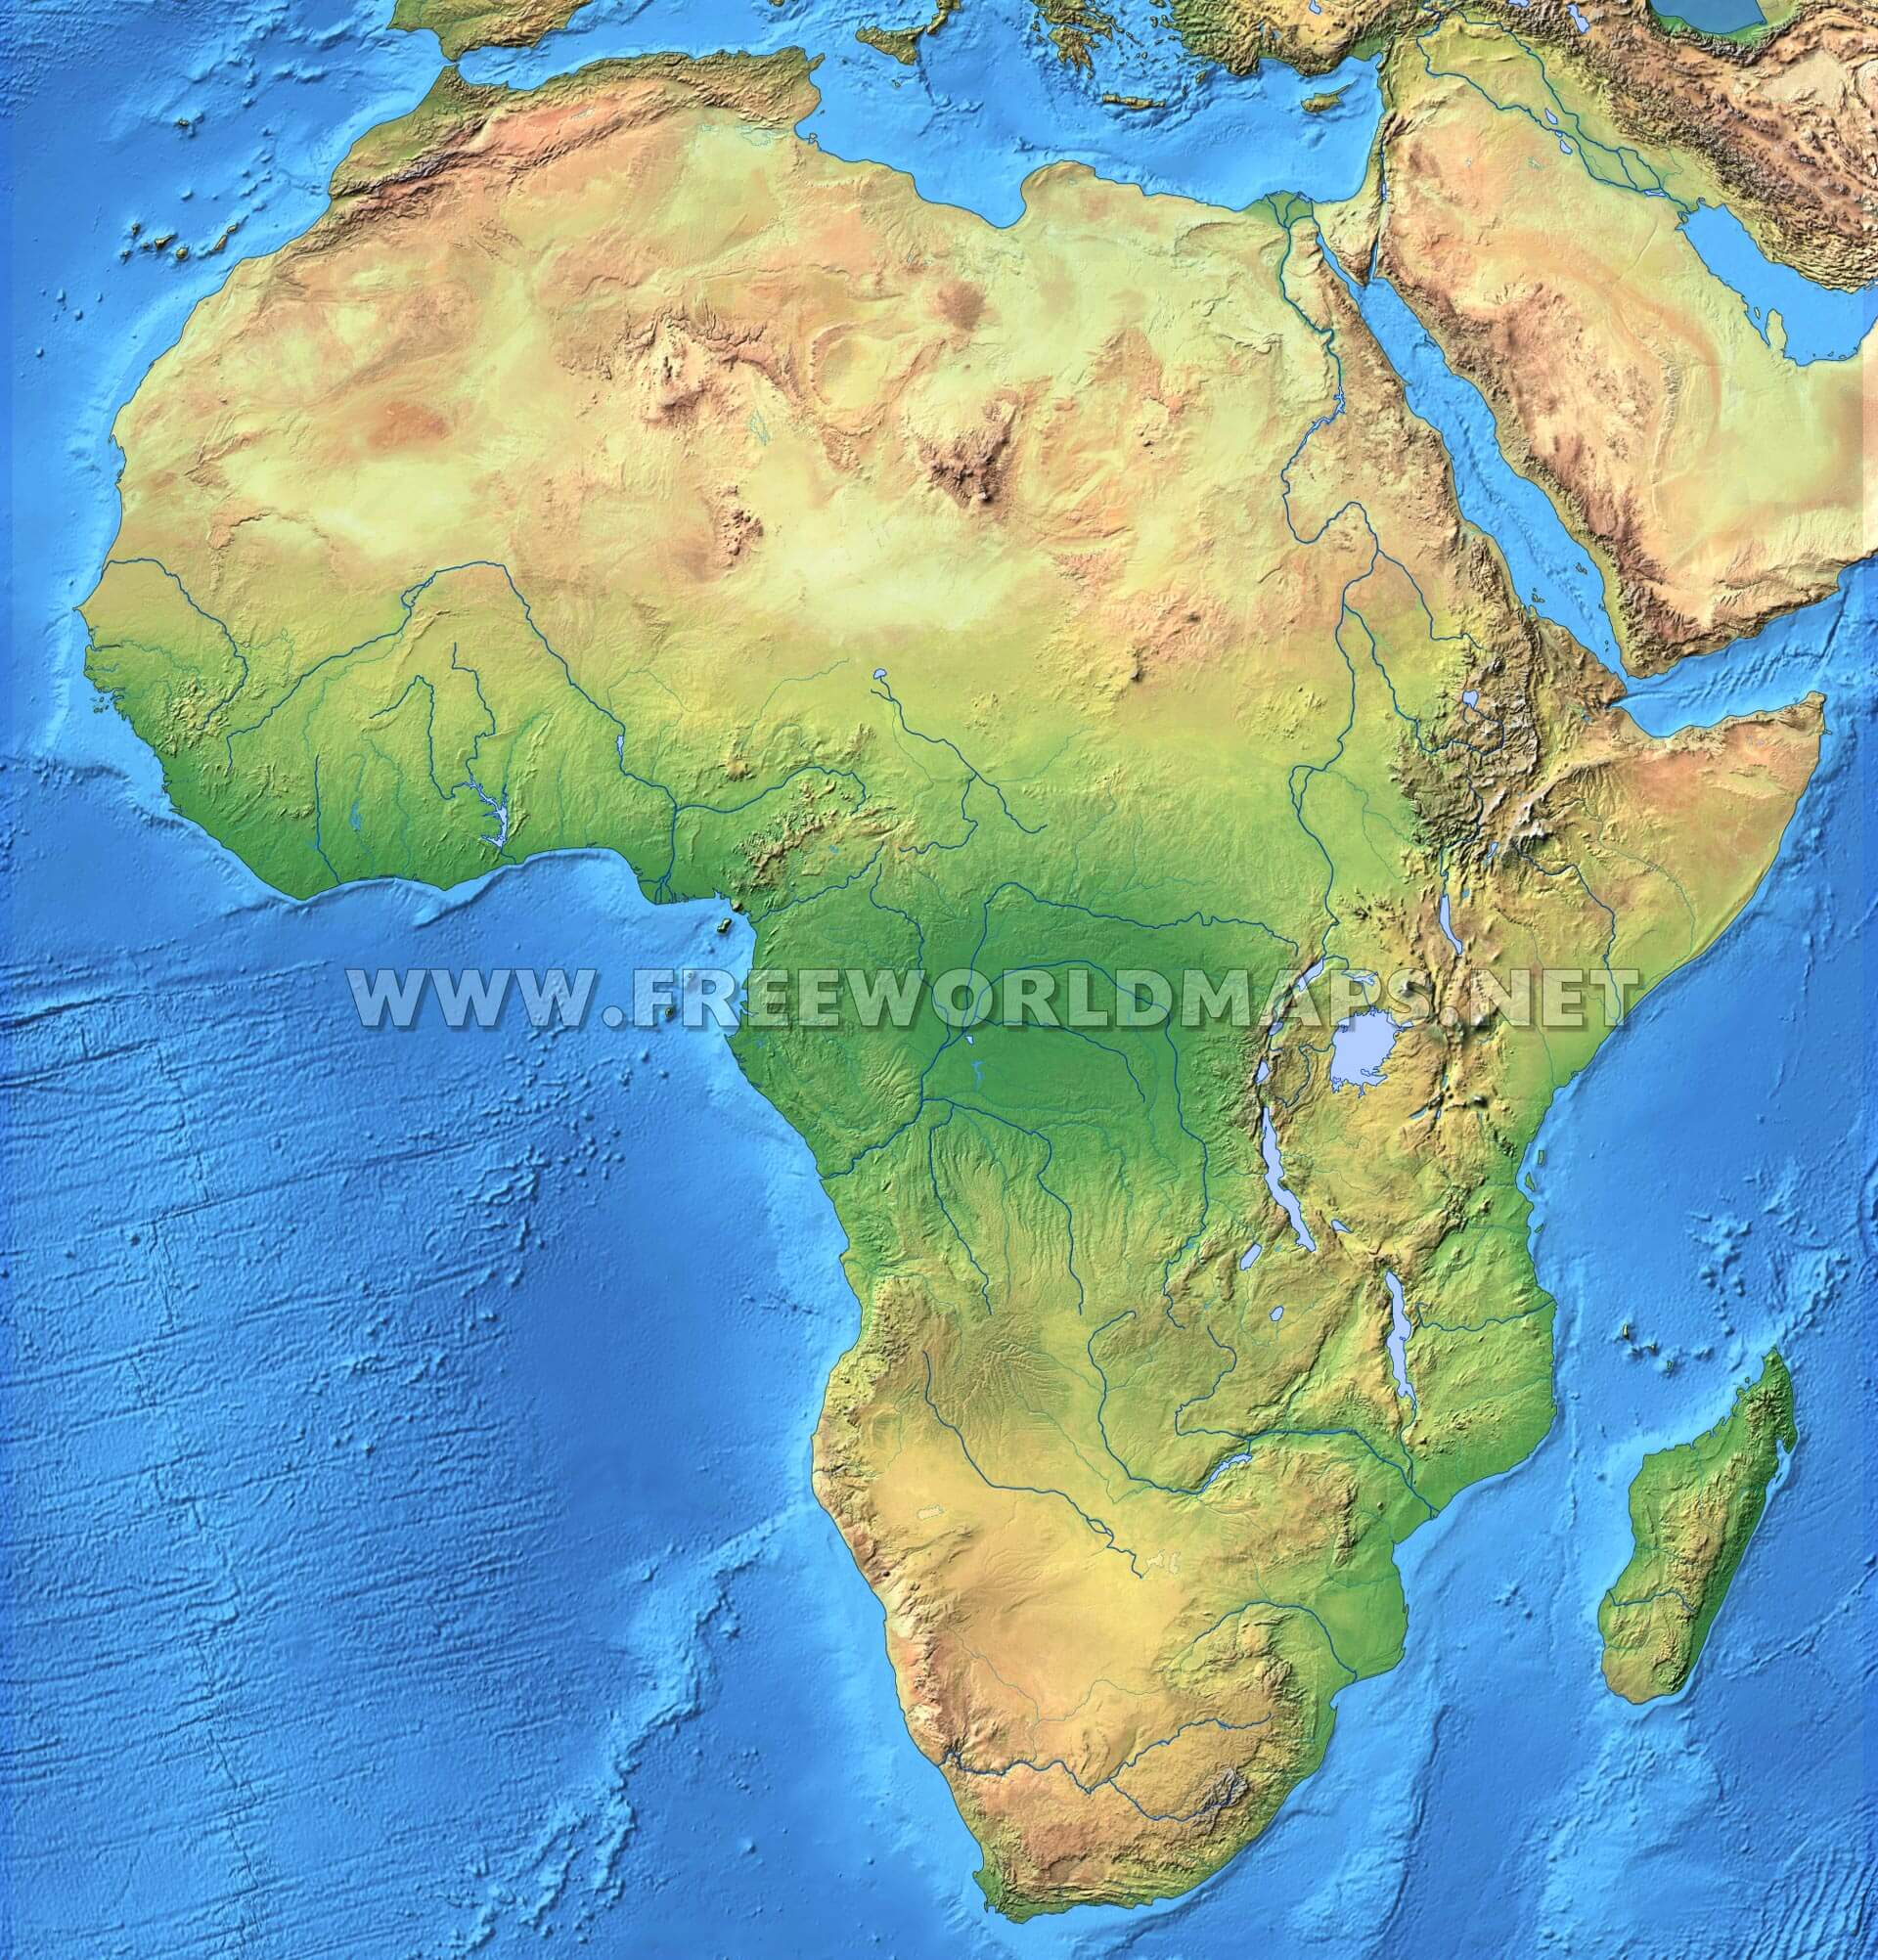 Africa Physical Map Freeworldmapsnet - Maps of africa